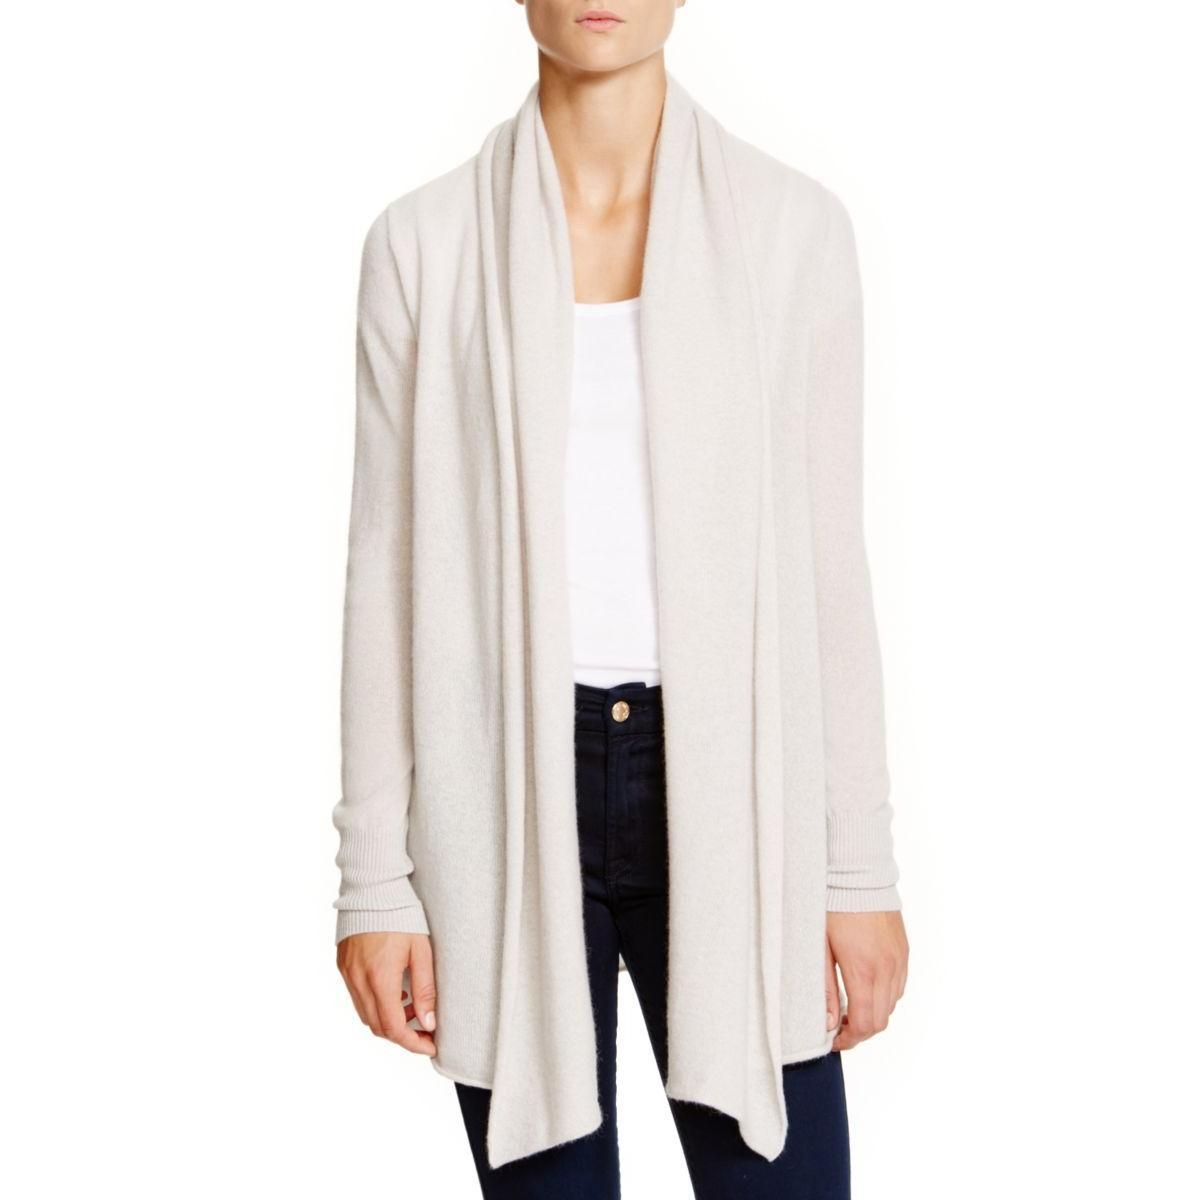 Private Label Womens Cashmere Open-Front Cardigan Sweater ...